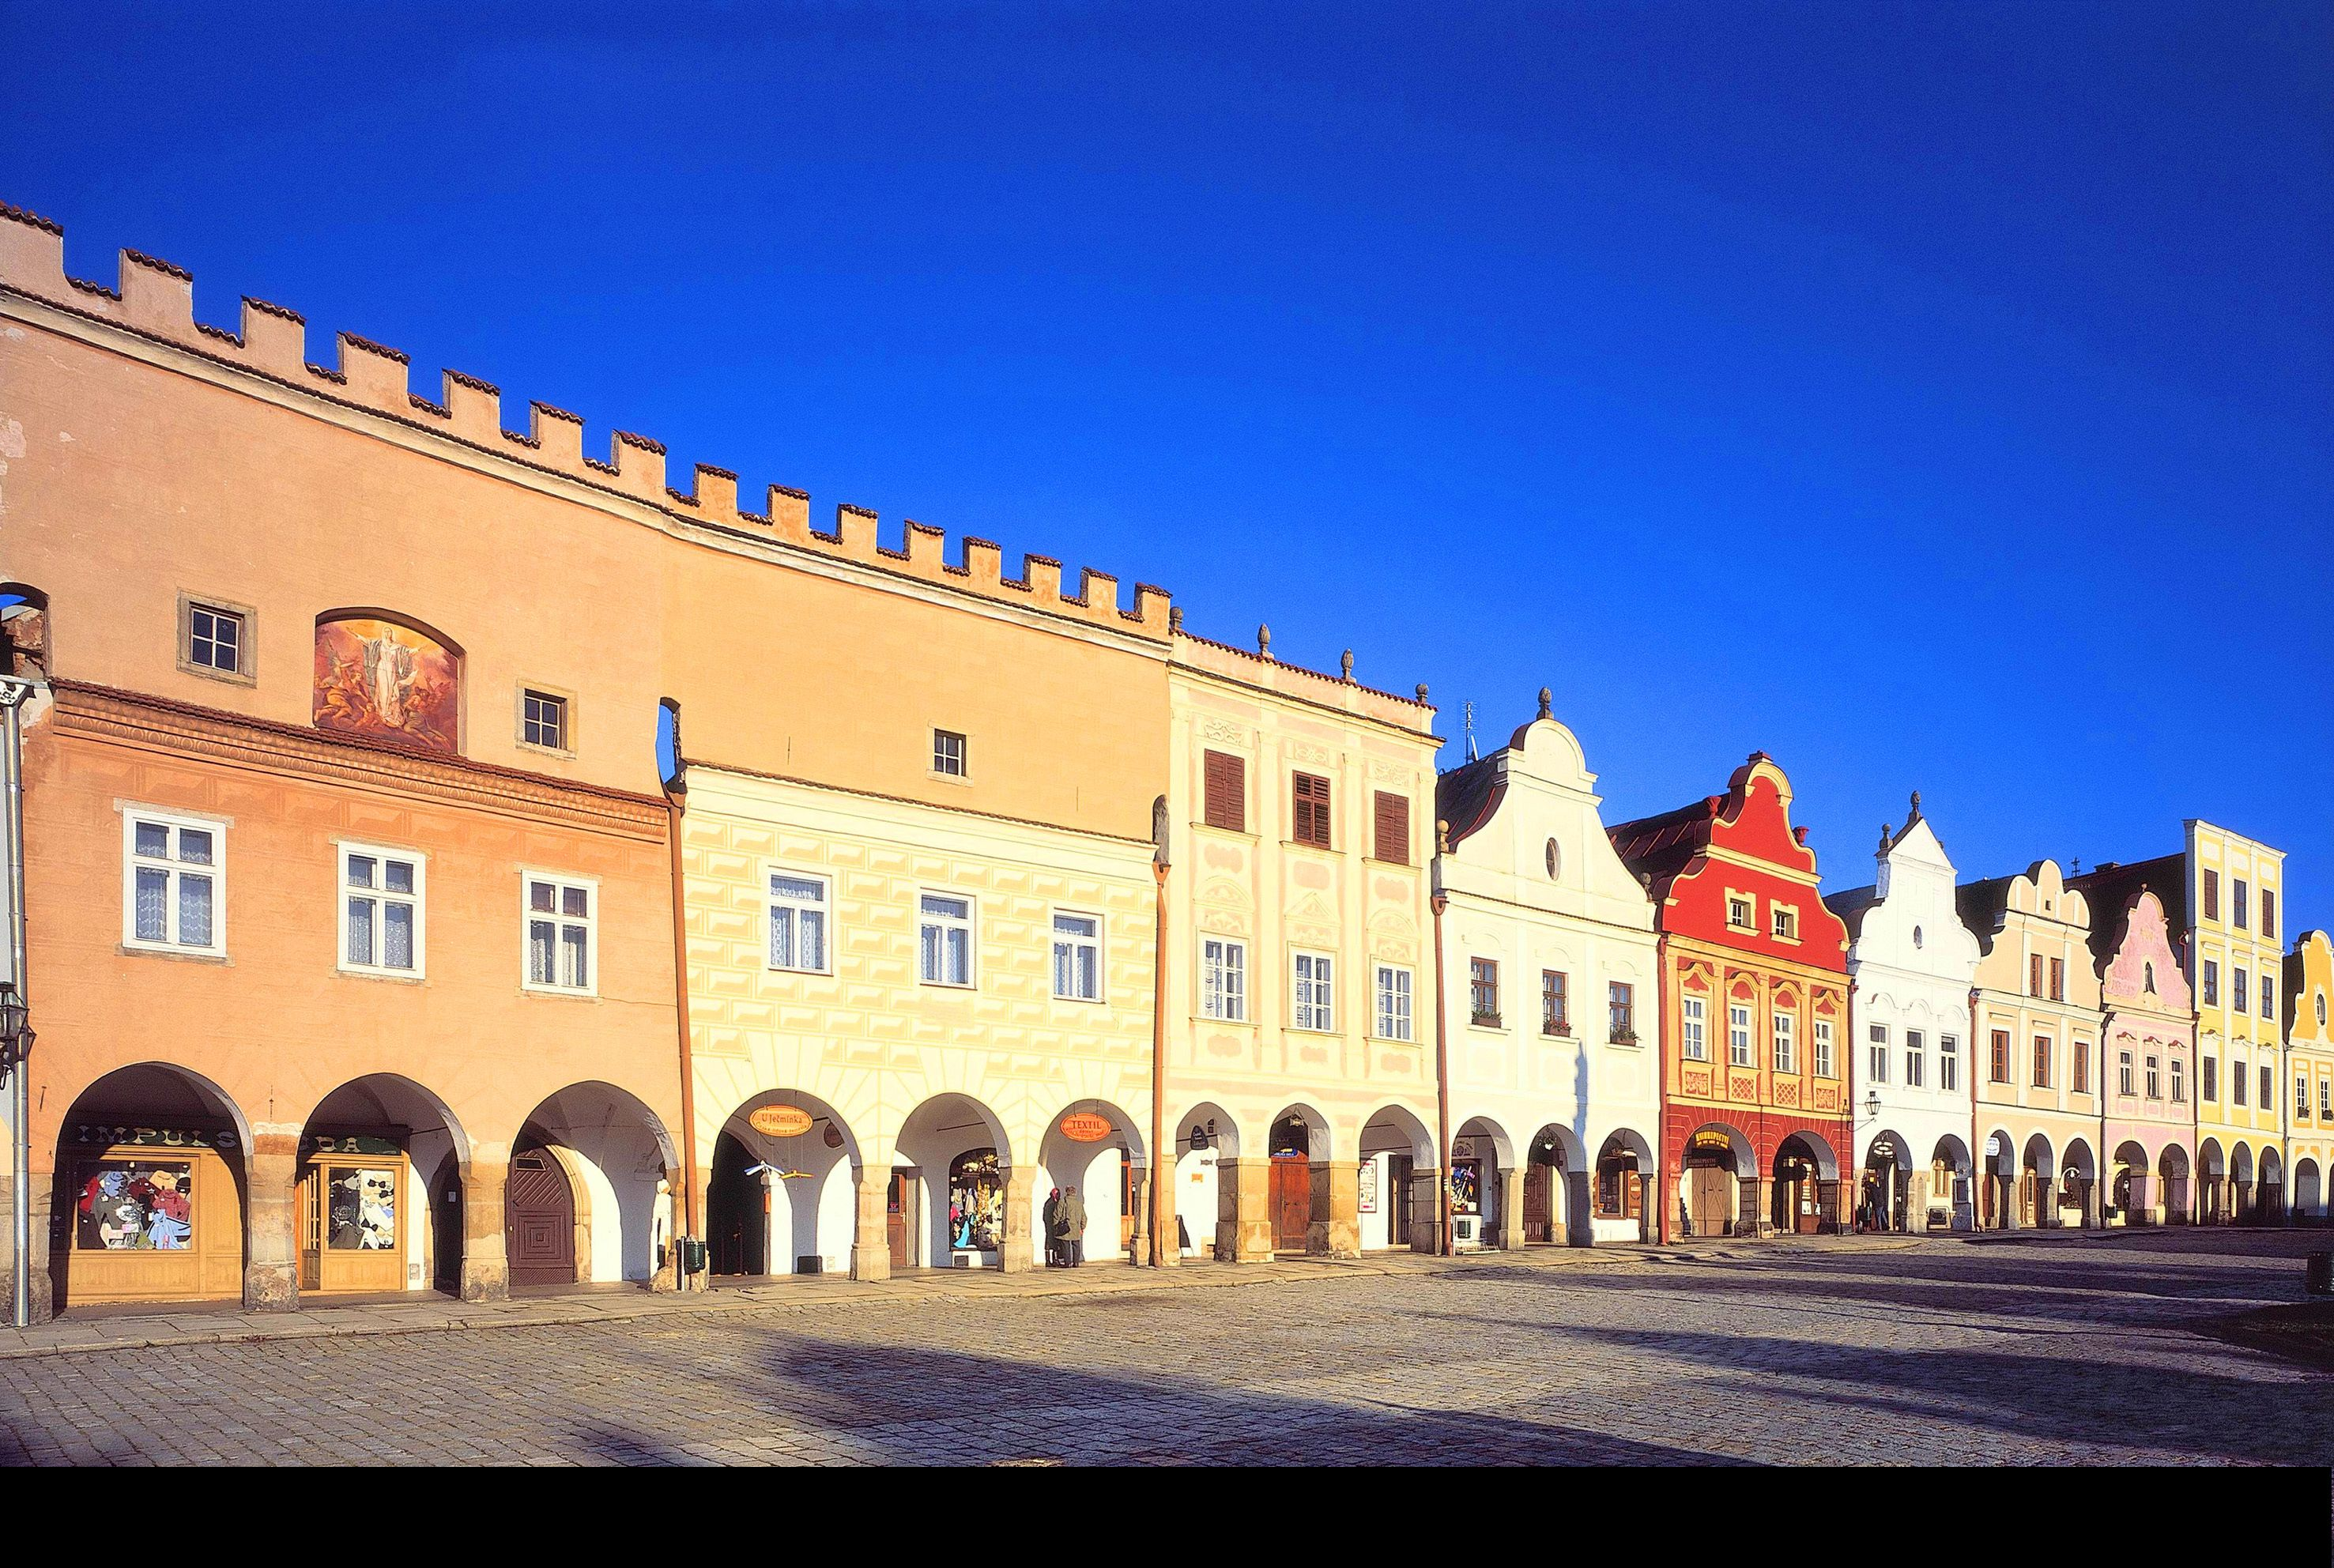 UNESCO world cultural heritage site - the town of Telč